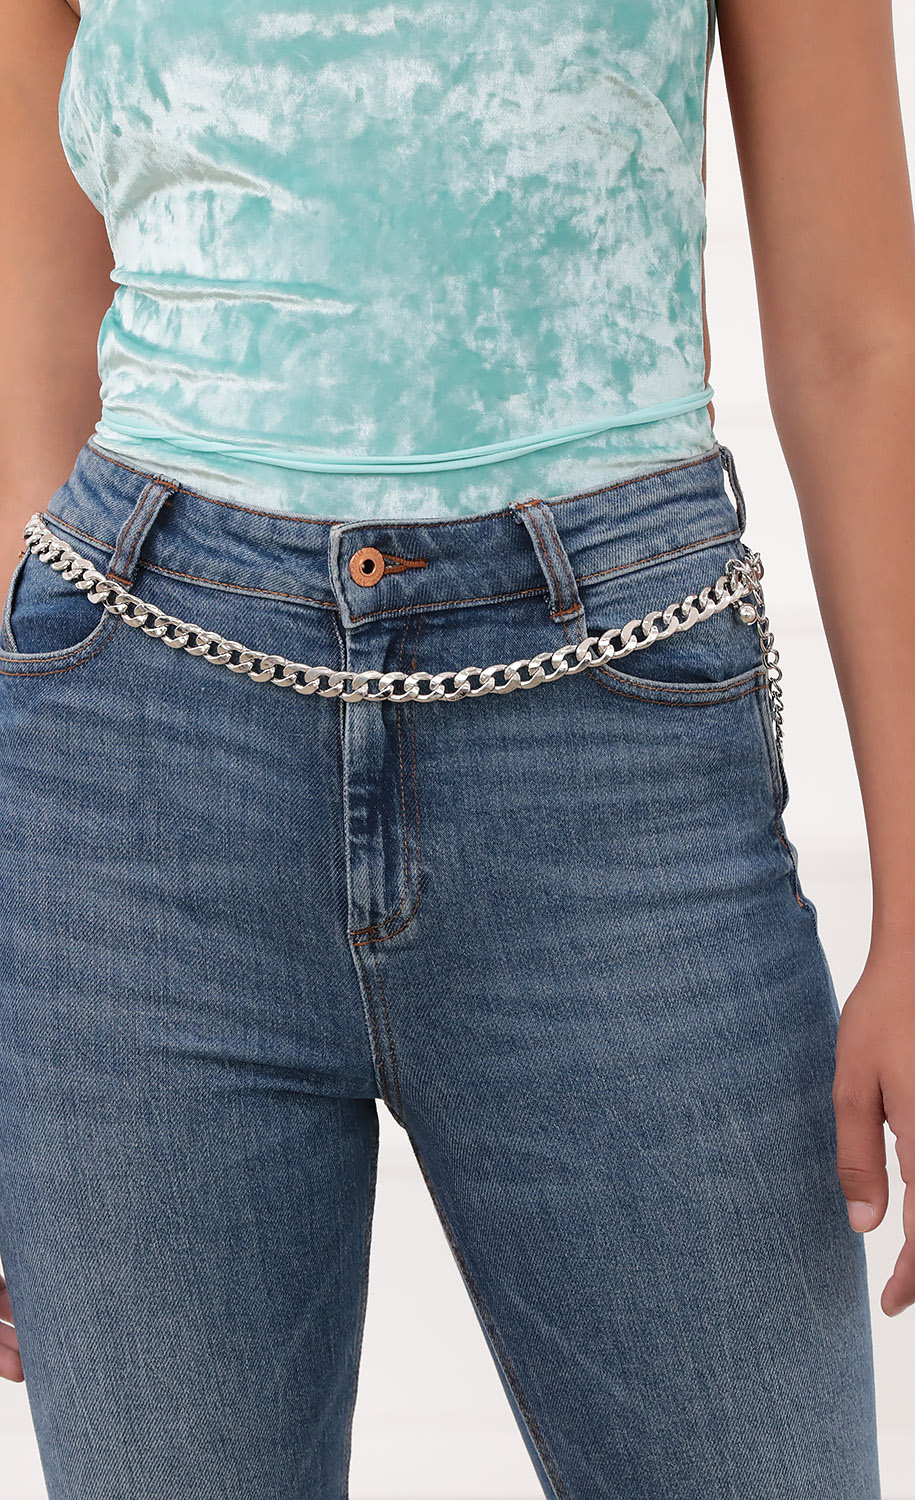 Thick Silver Chained Belt